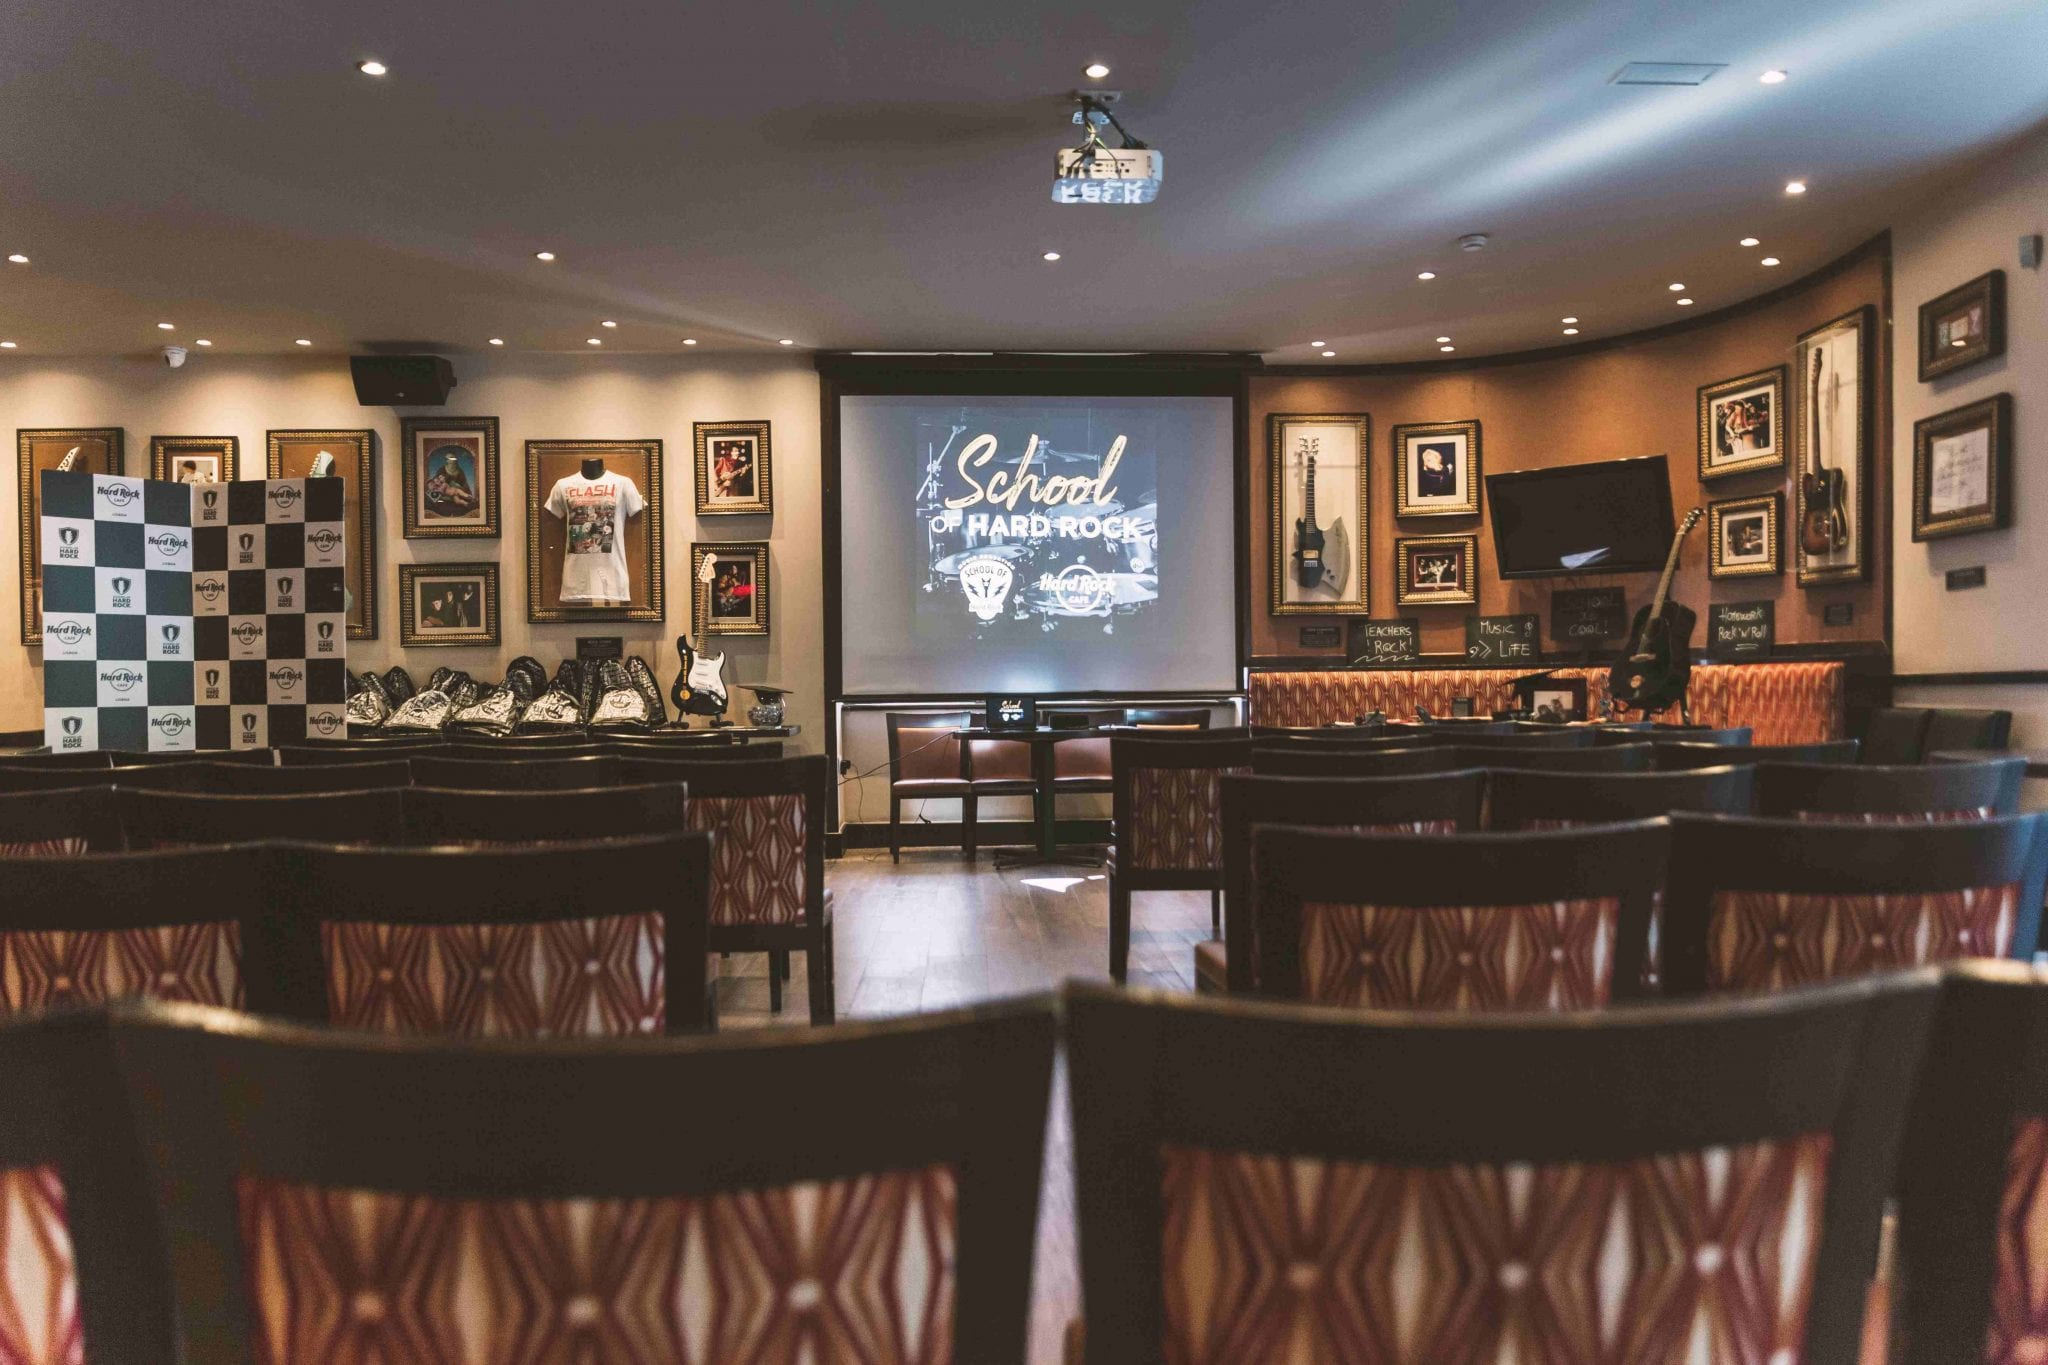 Hard Rock Cafe Lisboa_Escola do Hard Rock_2019_